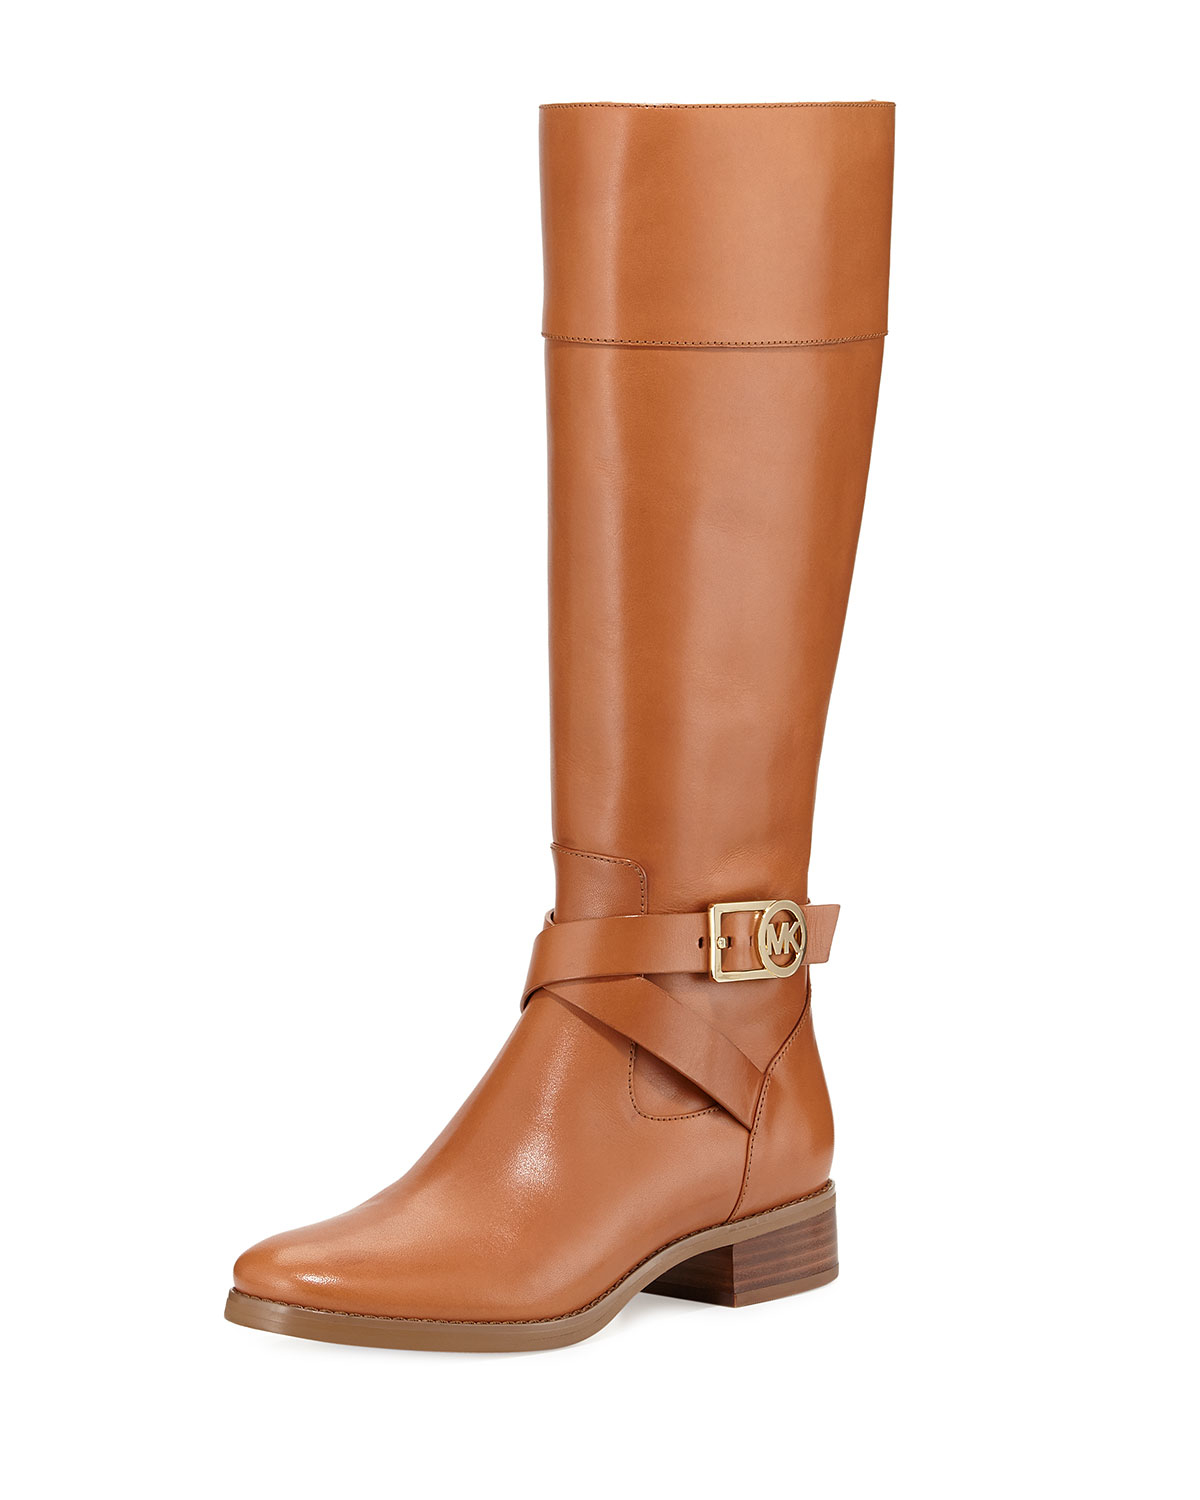 michael michael kors bryce leather riding boot in khaki luggage lyst. Black Bedroom Furniture Sets. Home Design Ideas